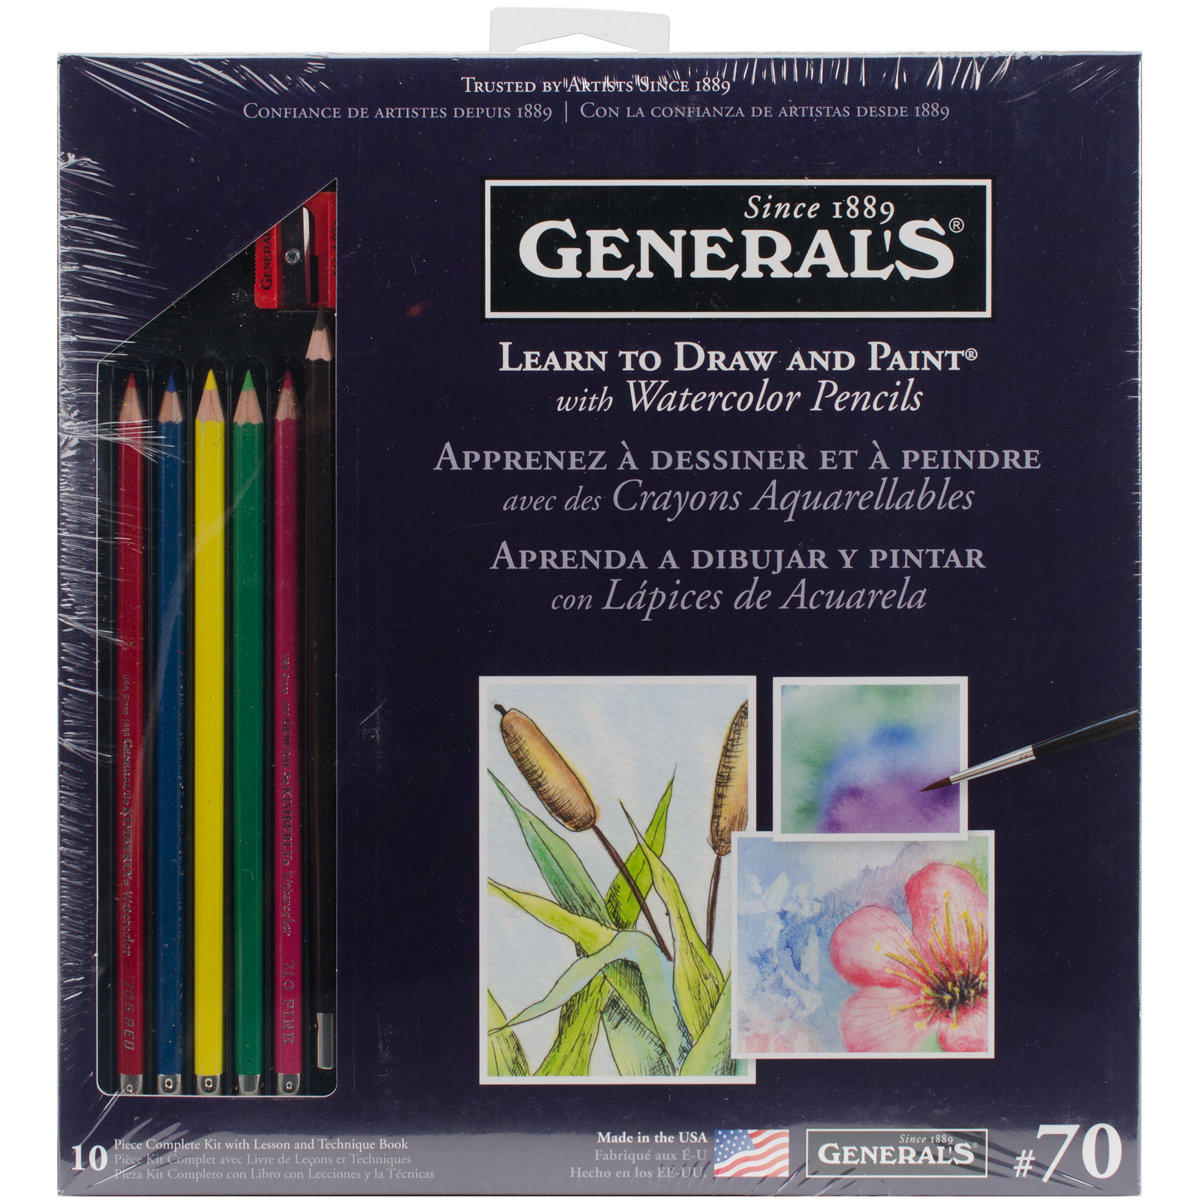 Learn To Draw And Paint With Watercolor Pencils-